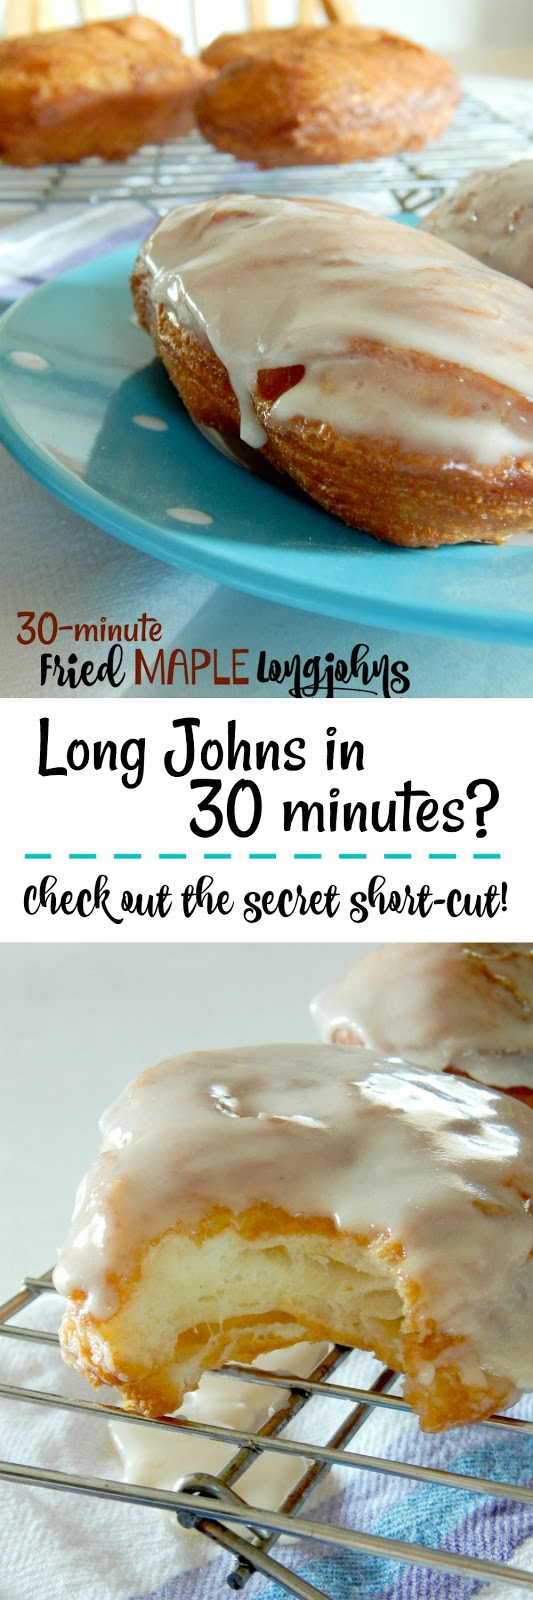 30-Minute Fried Maple Long Johns...a new short-cut makes these long johns easy and quick!  Buttery, flaky and soft with a delicious maple icing! (sweetandsavoryfood.com)